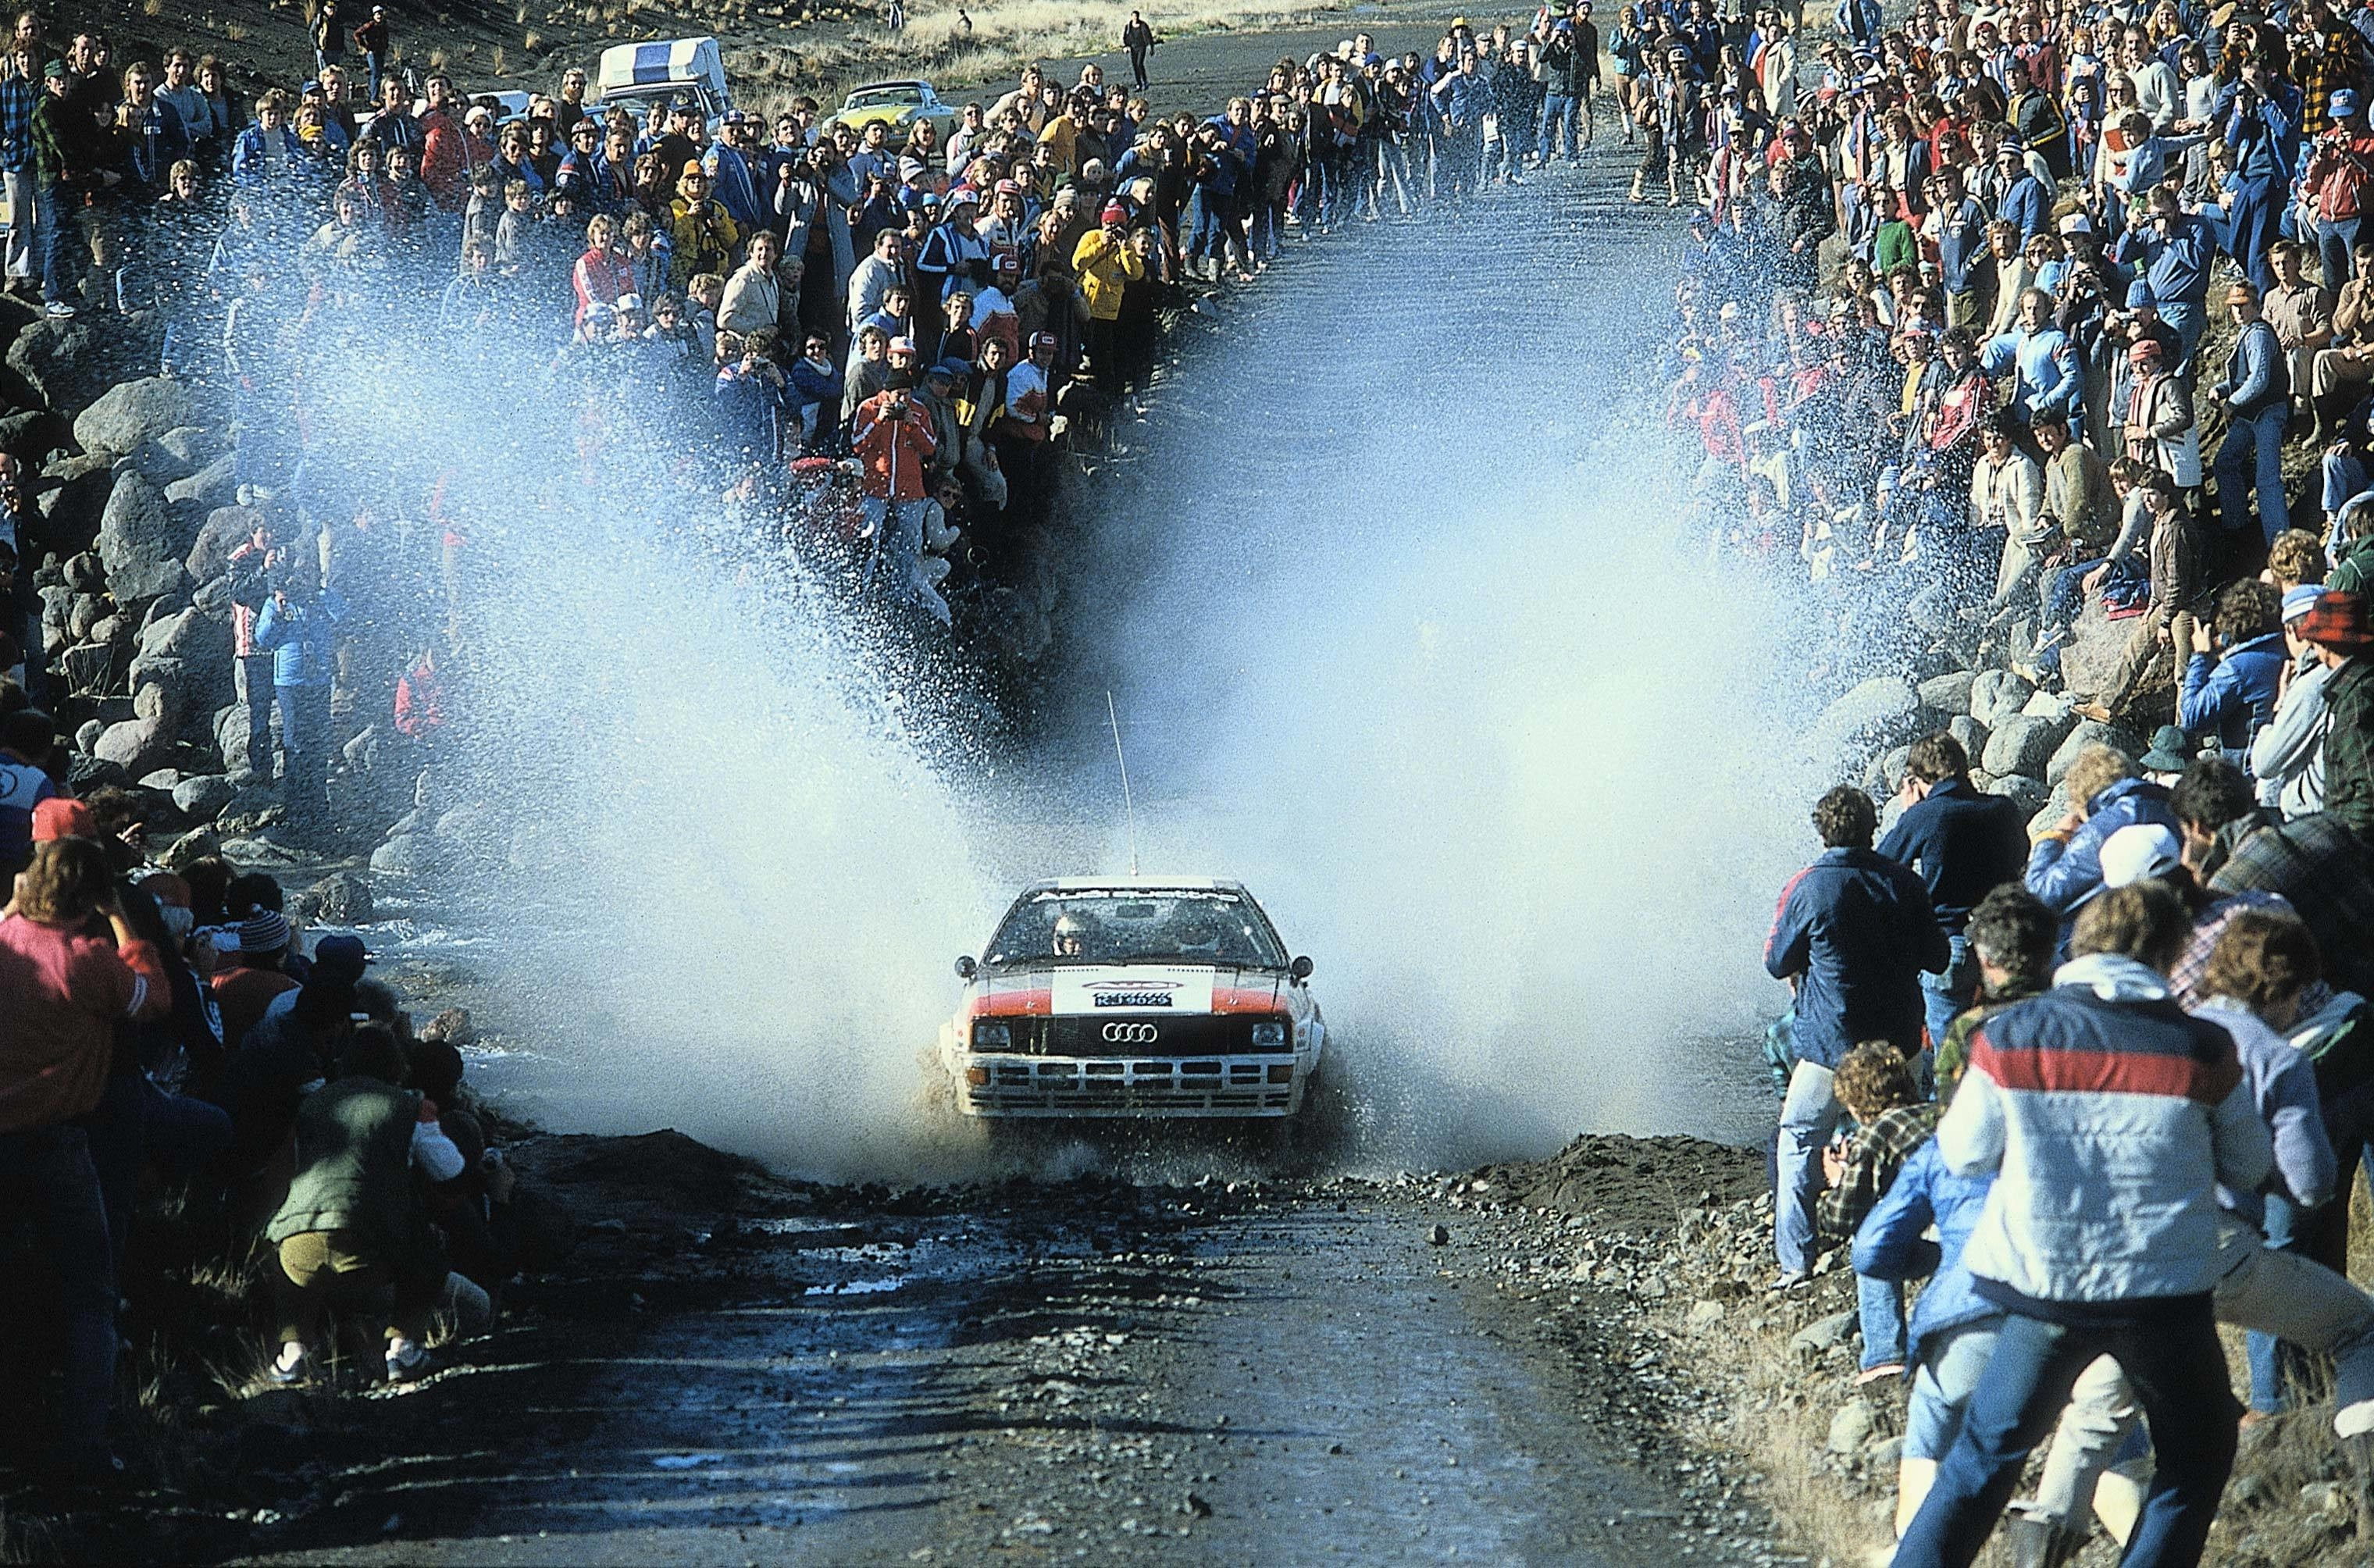 1982: Audi clinches the Rally World Championship for Manufacturers